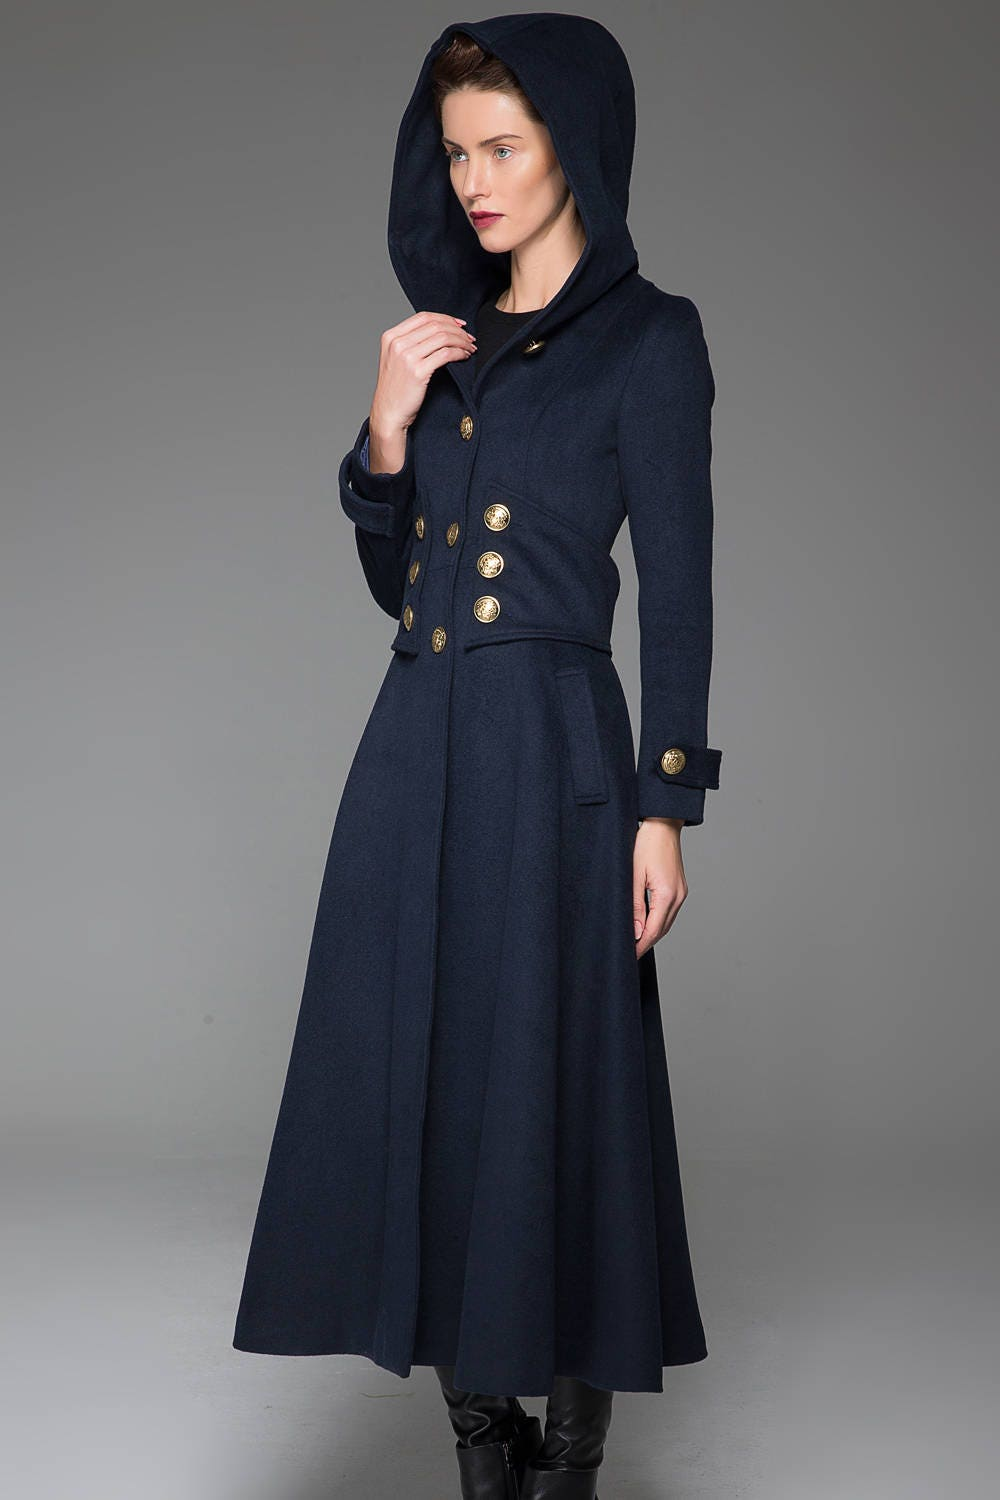 Find womens navy blue coat at ShopStyle. Shop the latest collection of womens navy blue coat from the most popular stores - all in one place.